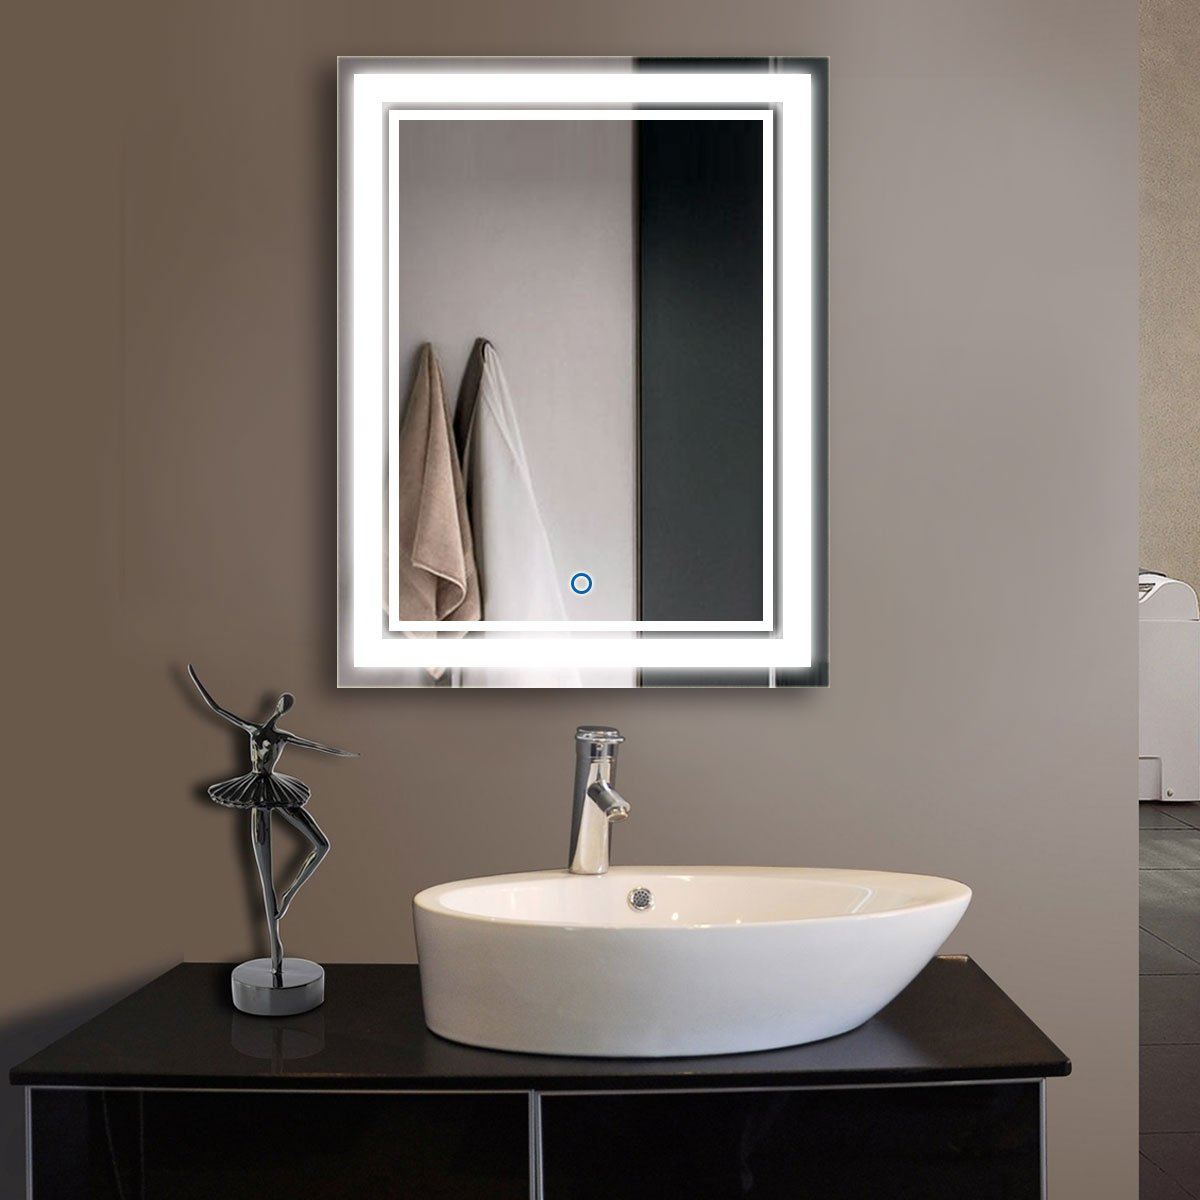 Amazon 28 x 36 in vertical led bathroom silvered mirror with amazon 28 x 36 in vertical led bathroom silvered mirror with touch button c ck160 i home kitchen aloadofball Choice Image